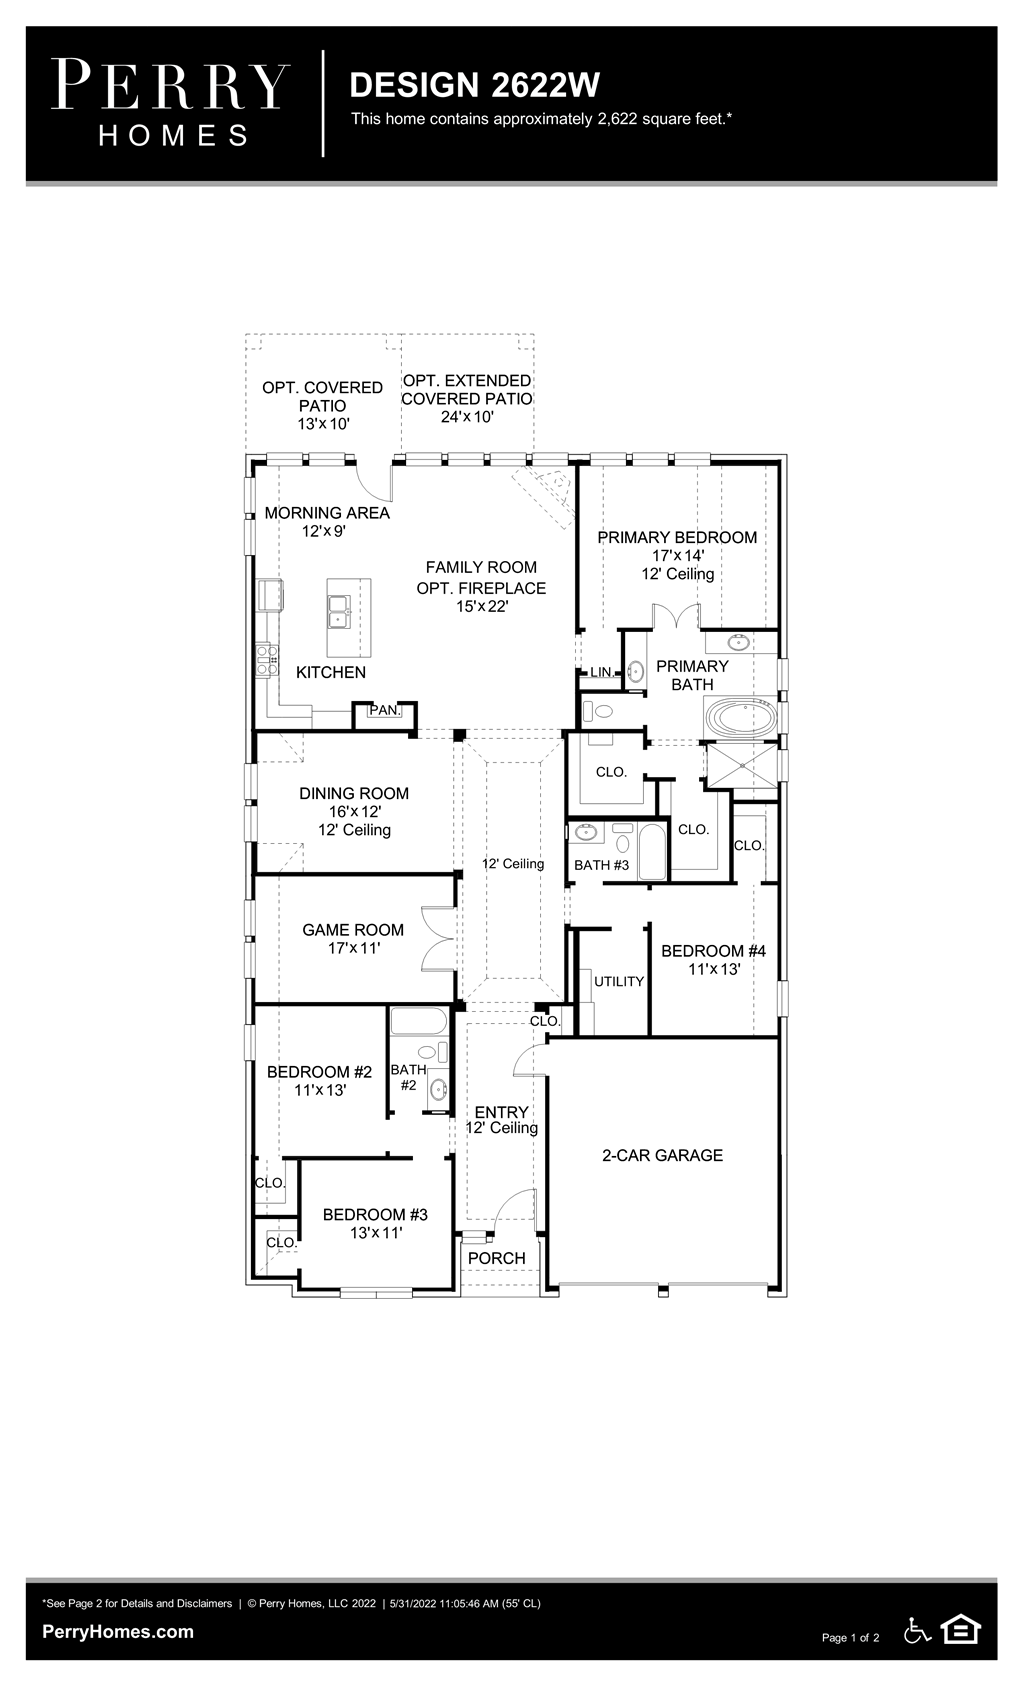 Floor Plan for 2622W